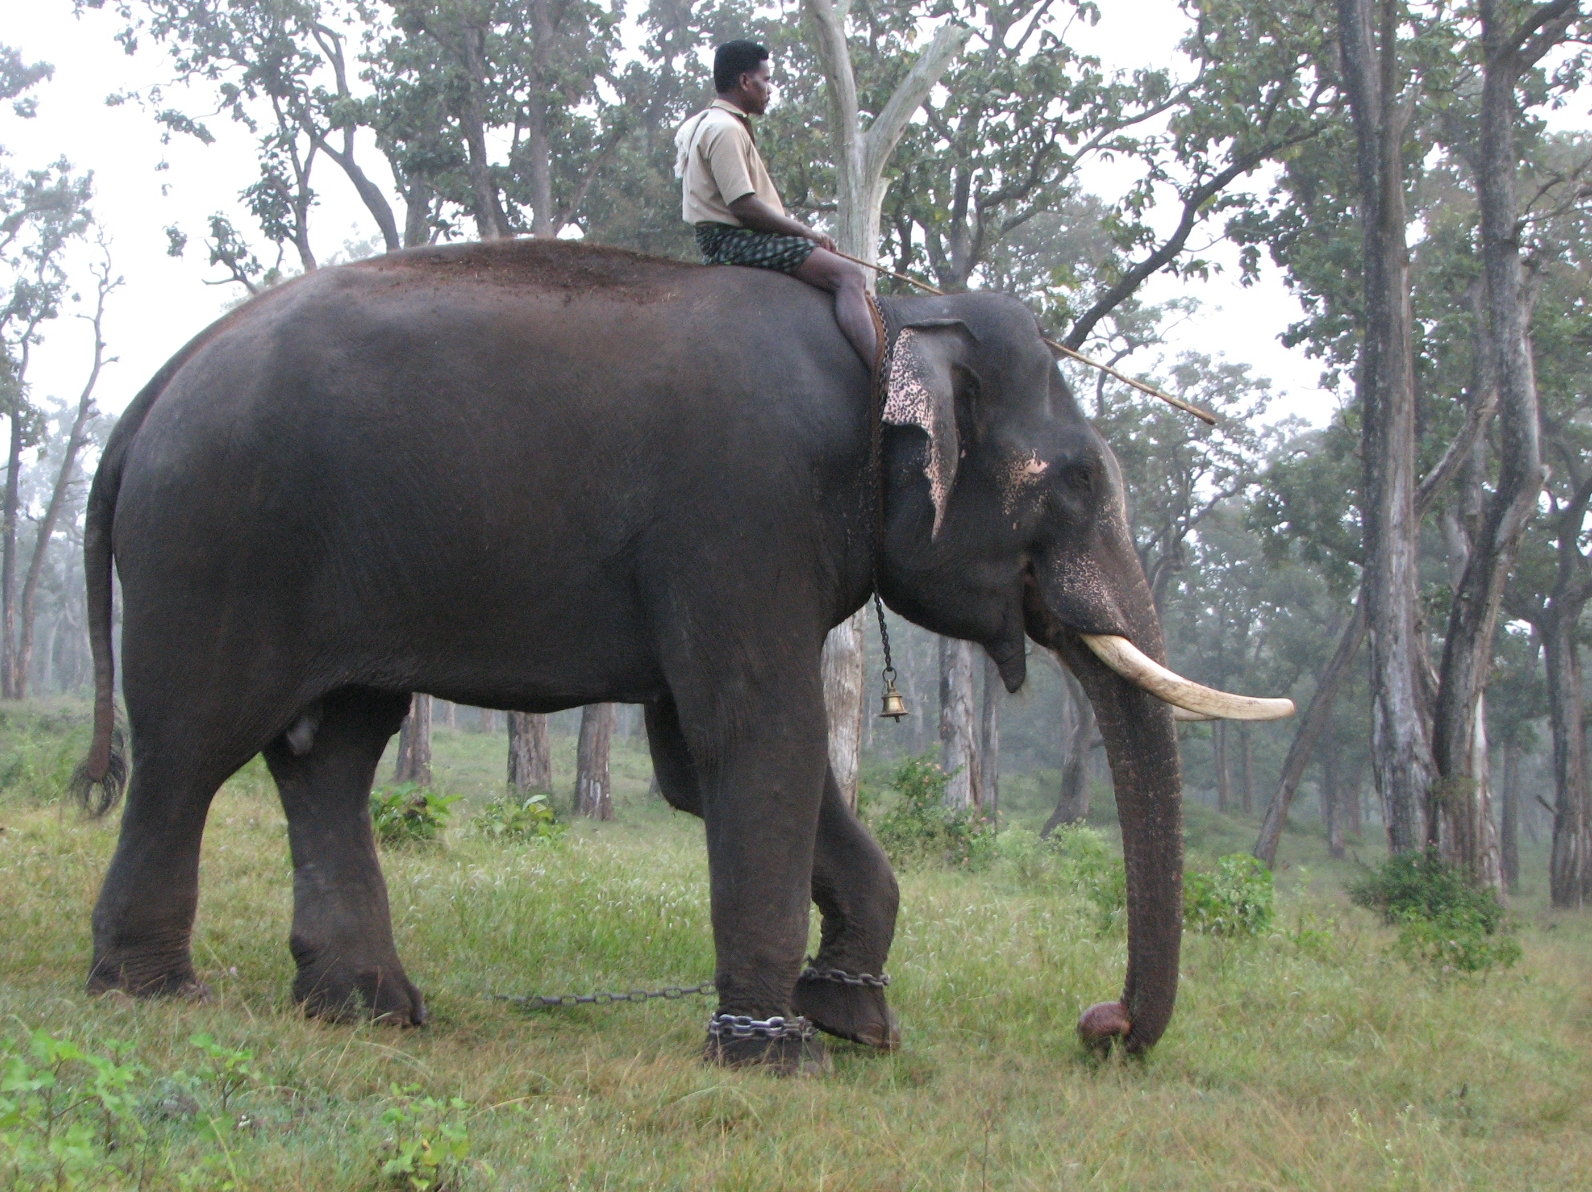 Author: Ravindraboopathi via Wikipedia https://commons.wikimedia.org/wiki/File:Indian_Elephant.jpeg  image